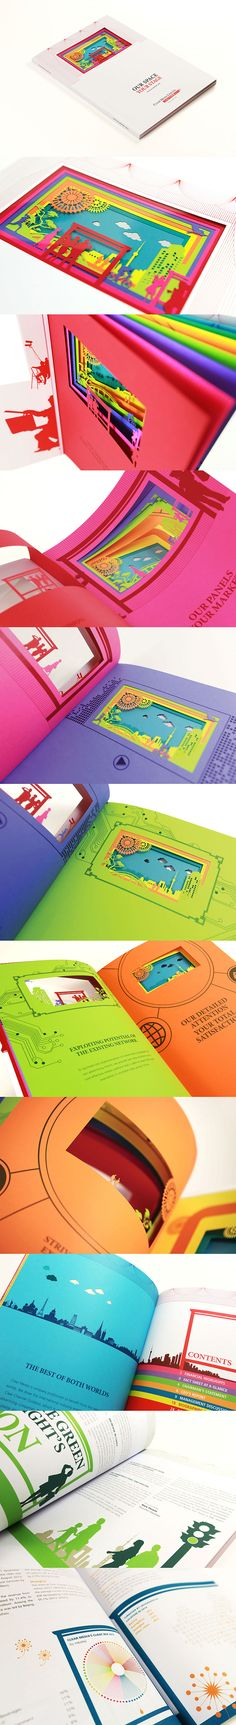 """A """"Real"""" Advertising Panel on Book The Outstanding Annual Report by Phoenix Communications. Taylor-made to bring out client's business in advertising panels, design is themed """"Our Space Your Stage"""". Acrylic film is inserted on cover by special printing procedures, colorful inside pages with laser cut images are designed. Each highlights different message, but the pages also combine as one, forming a beautiful stage (advertising panel) when the book is closed."""